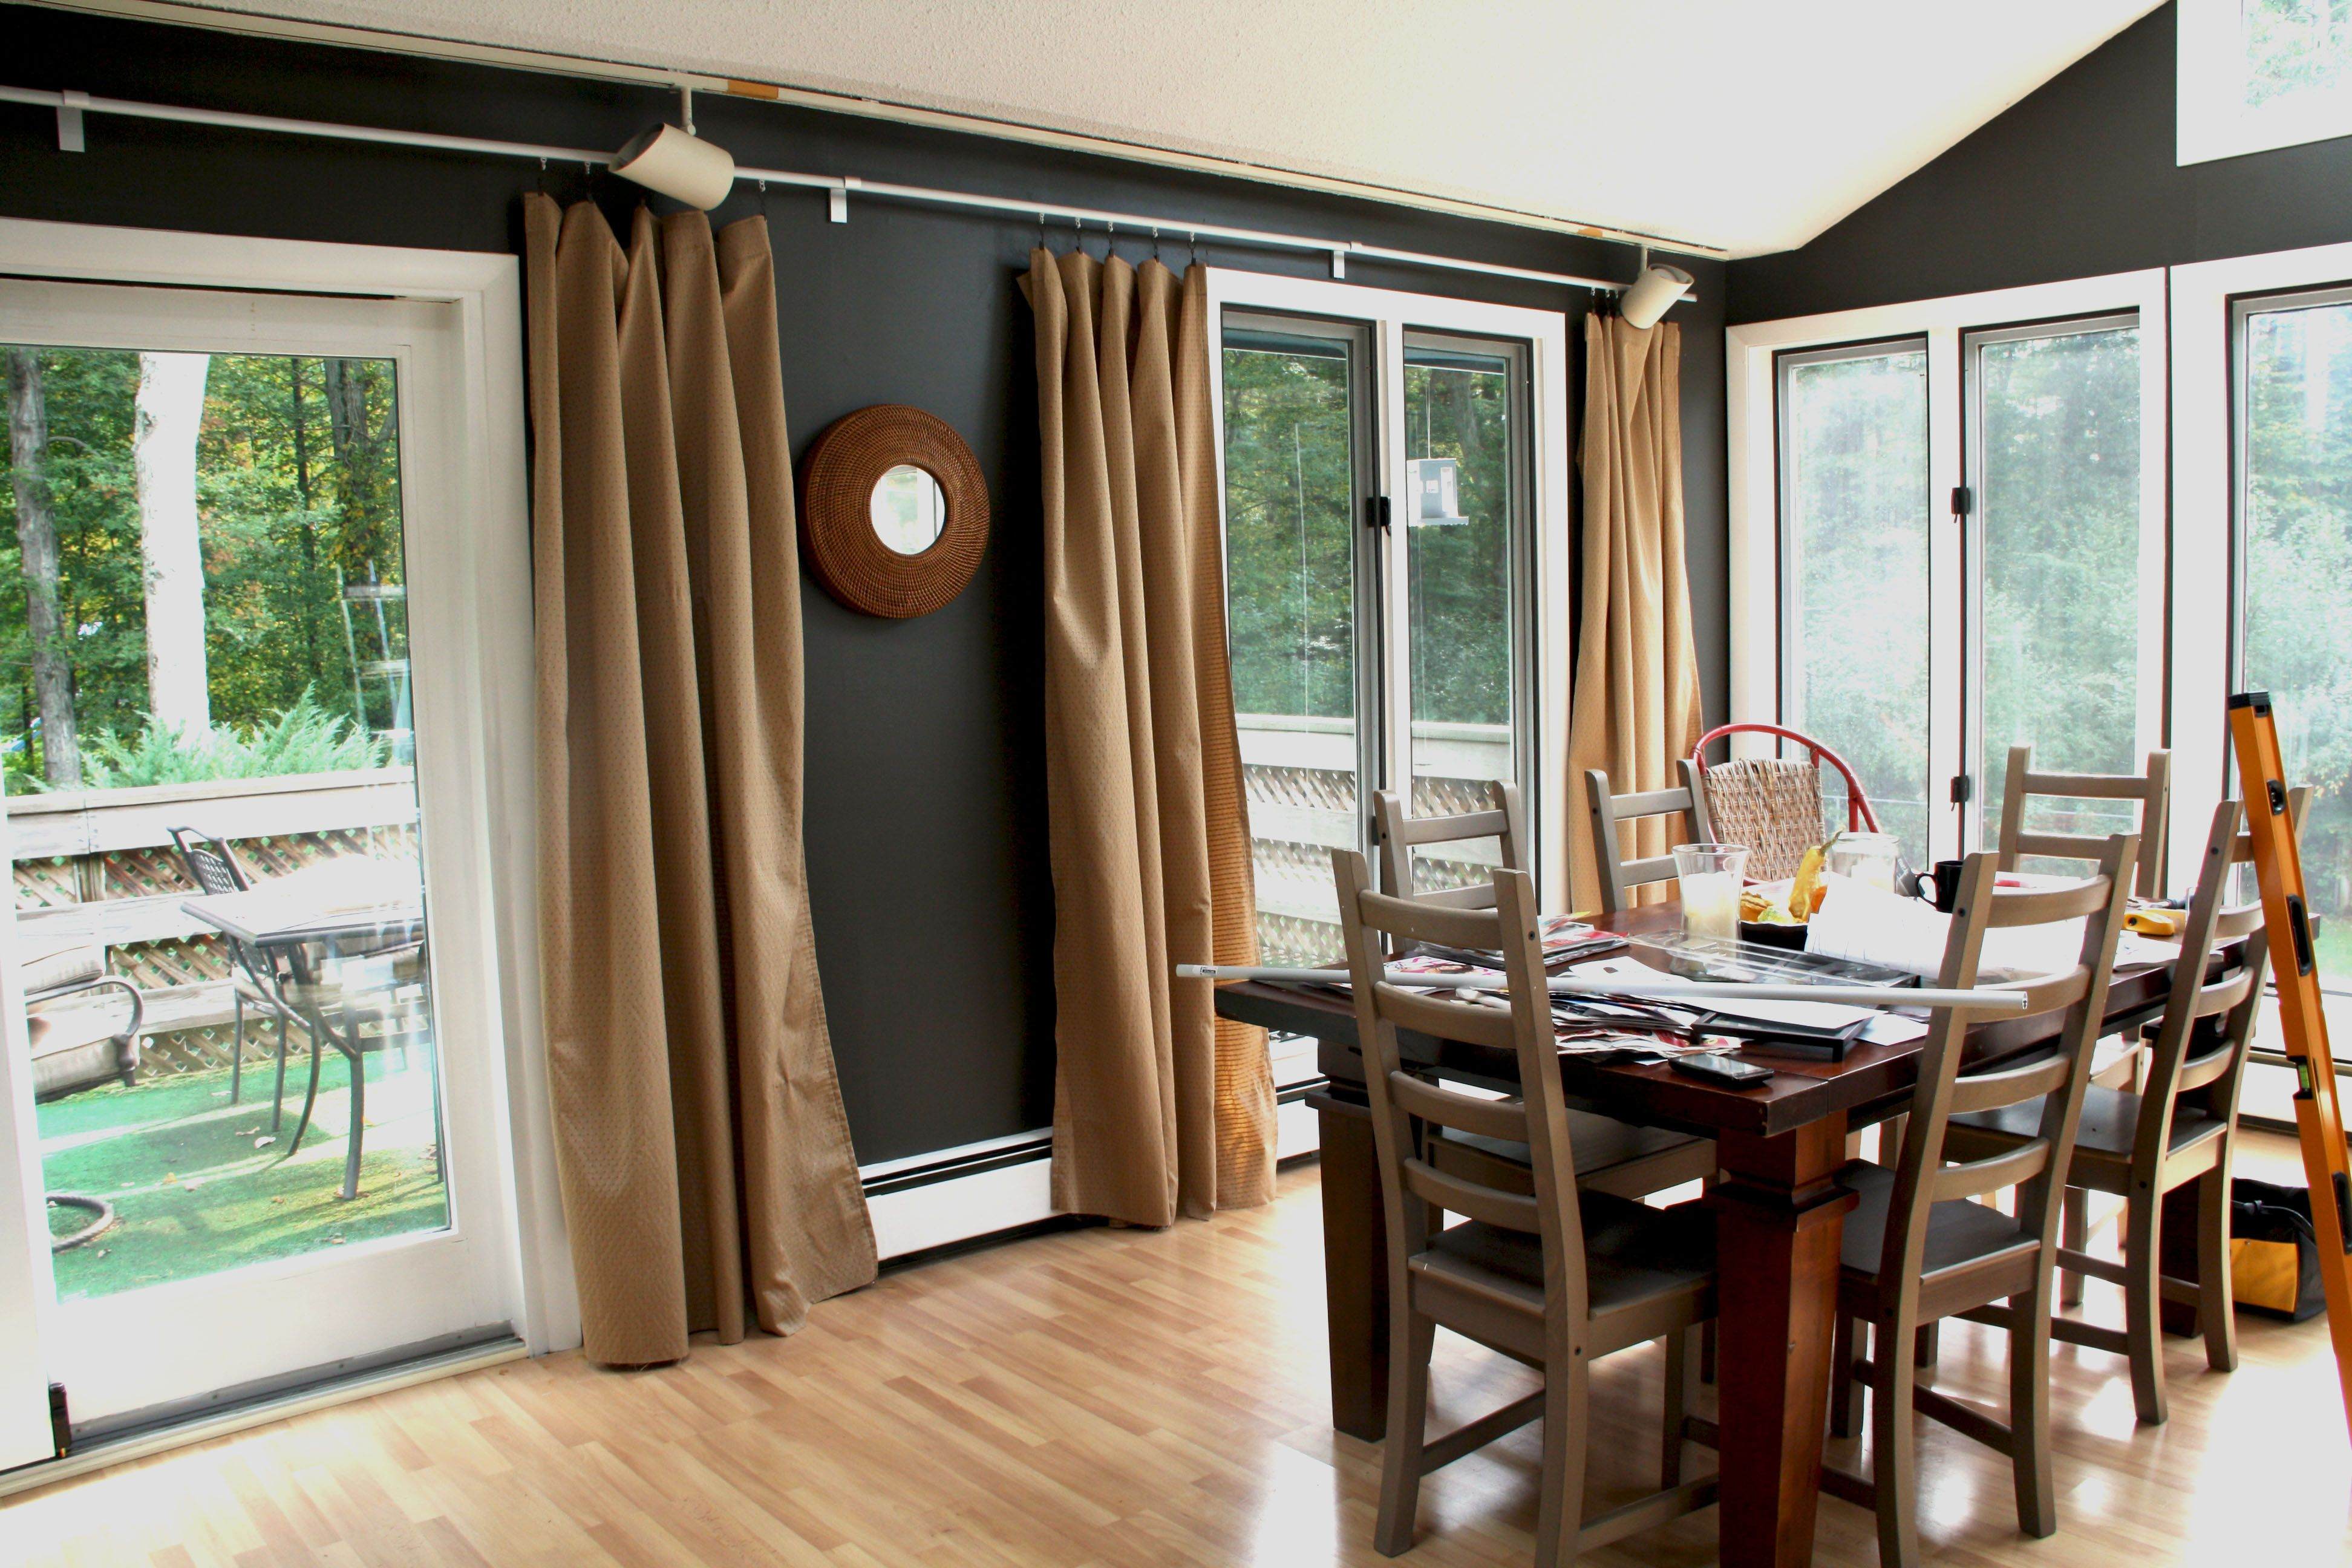 Room Refined Decorating Ideas Using Extra Long Curtain Rods Dining